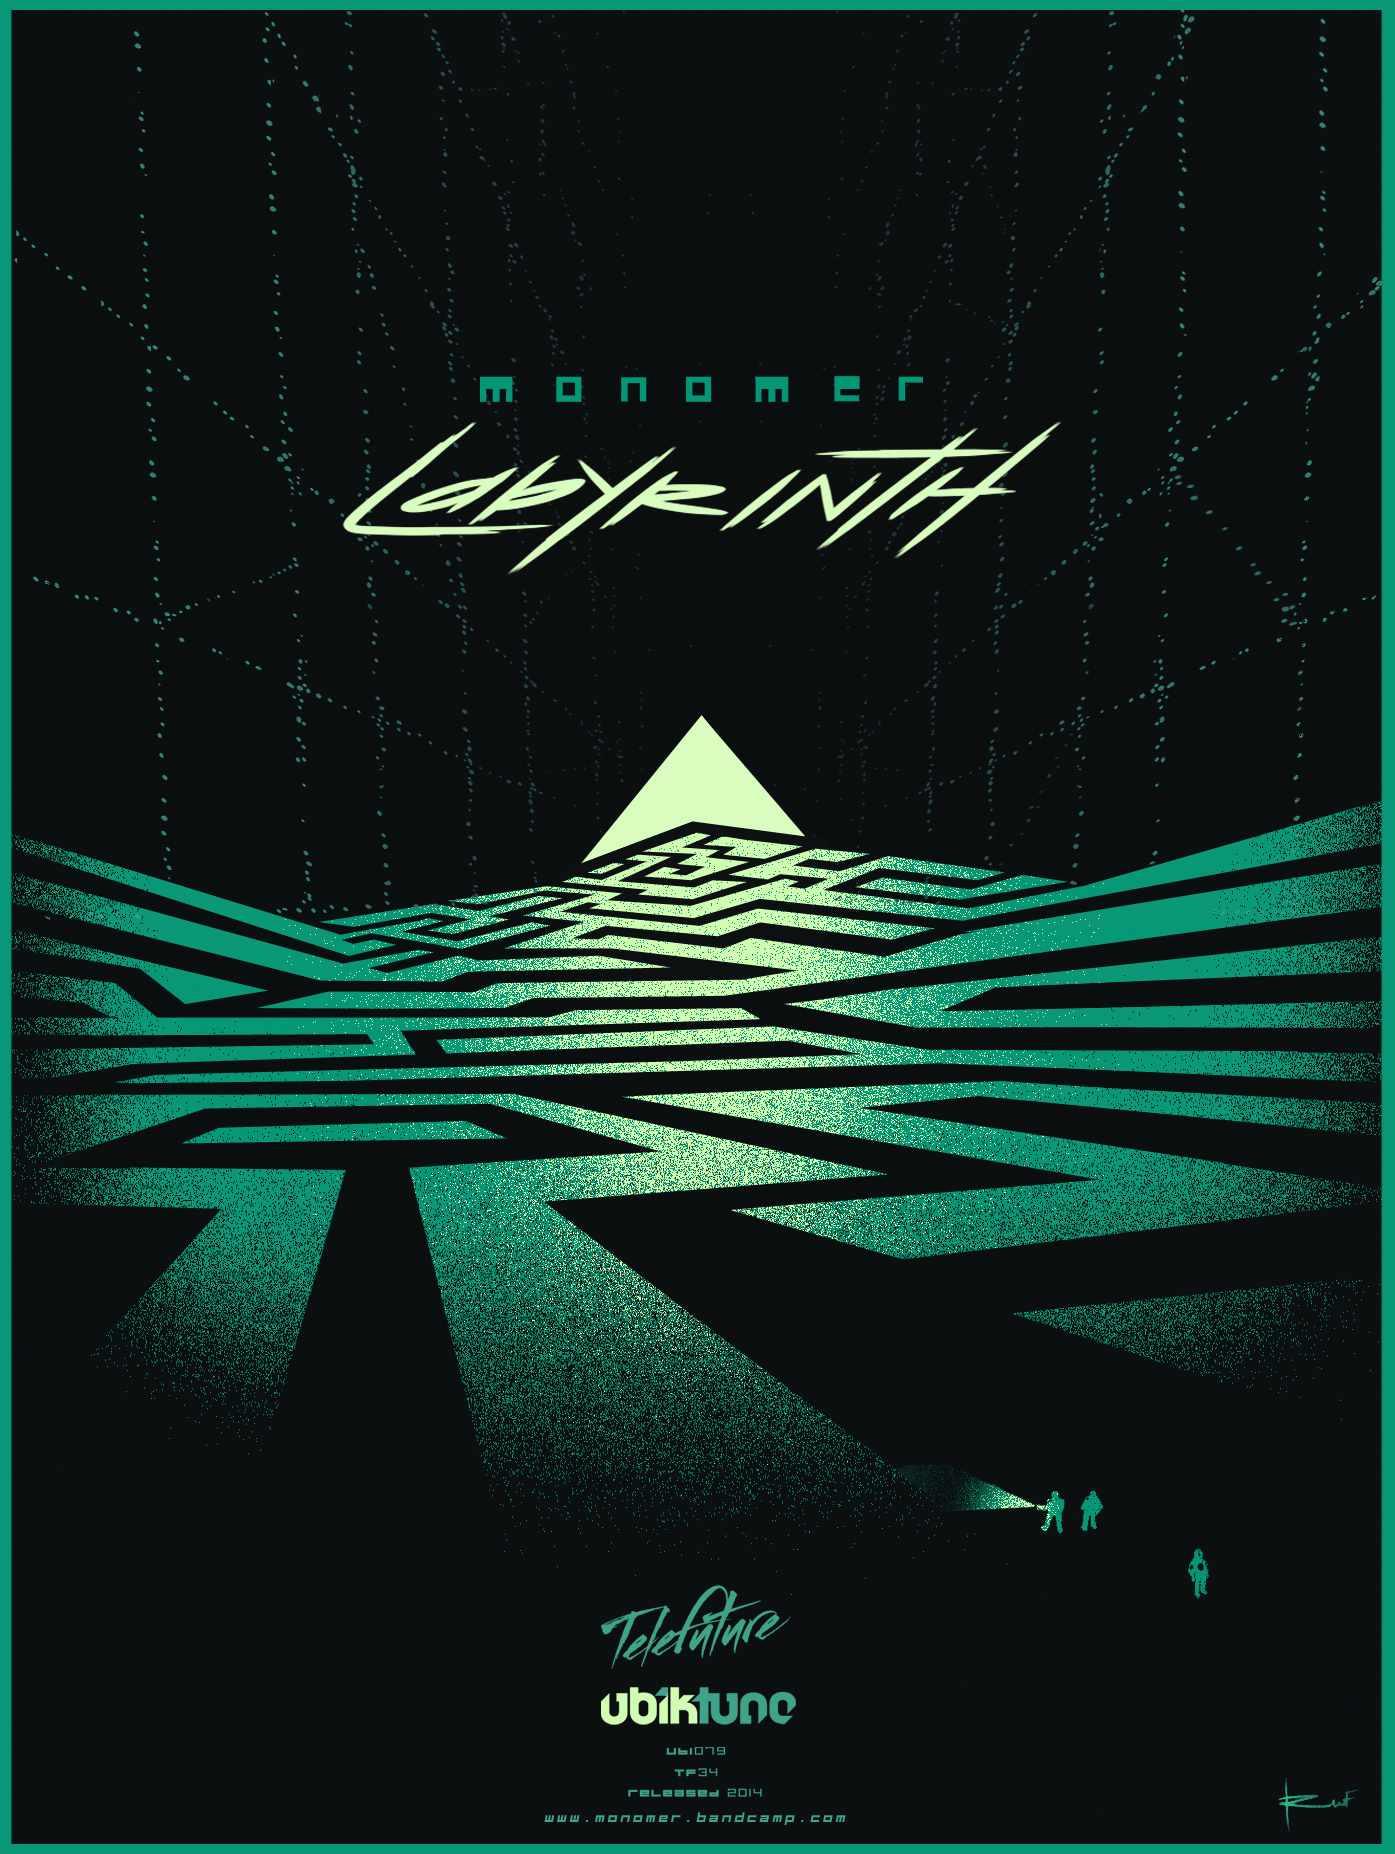 Poster design hd - Alternative Poster Design For Monomer S Labyrinth Created By Rufus Blacklock Click On Thumb For Hd Version